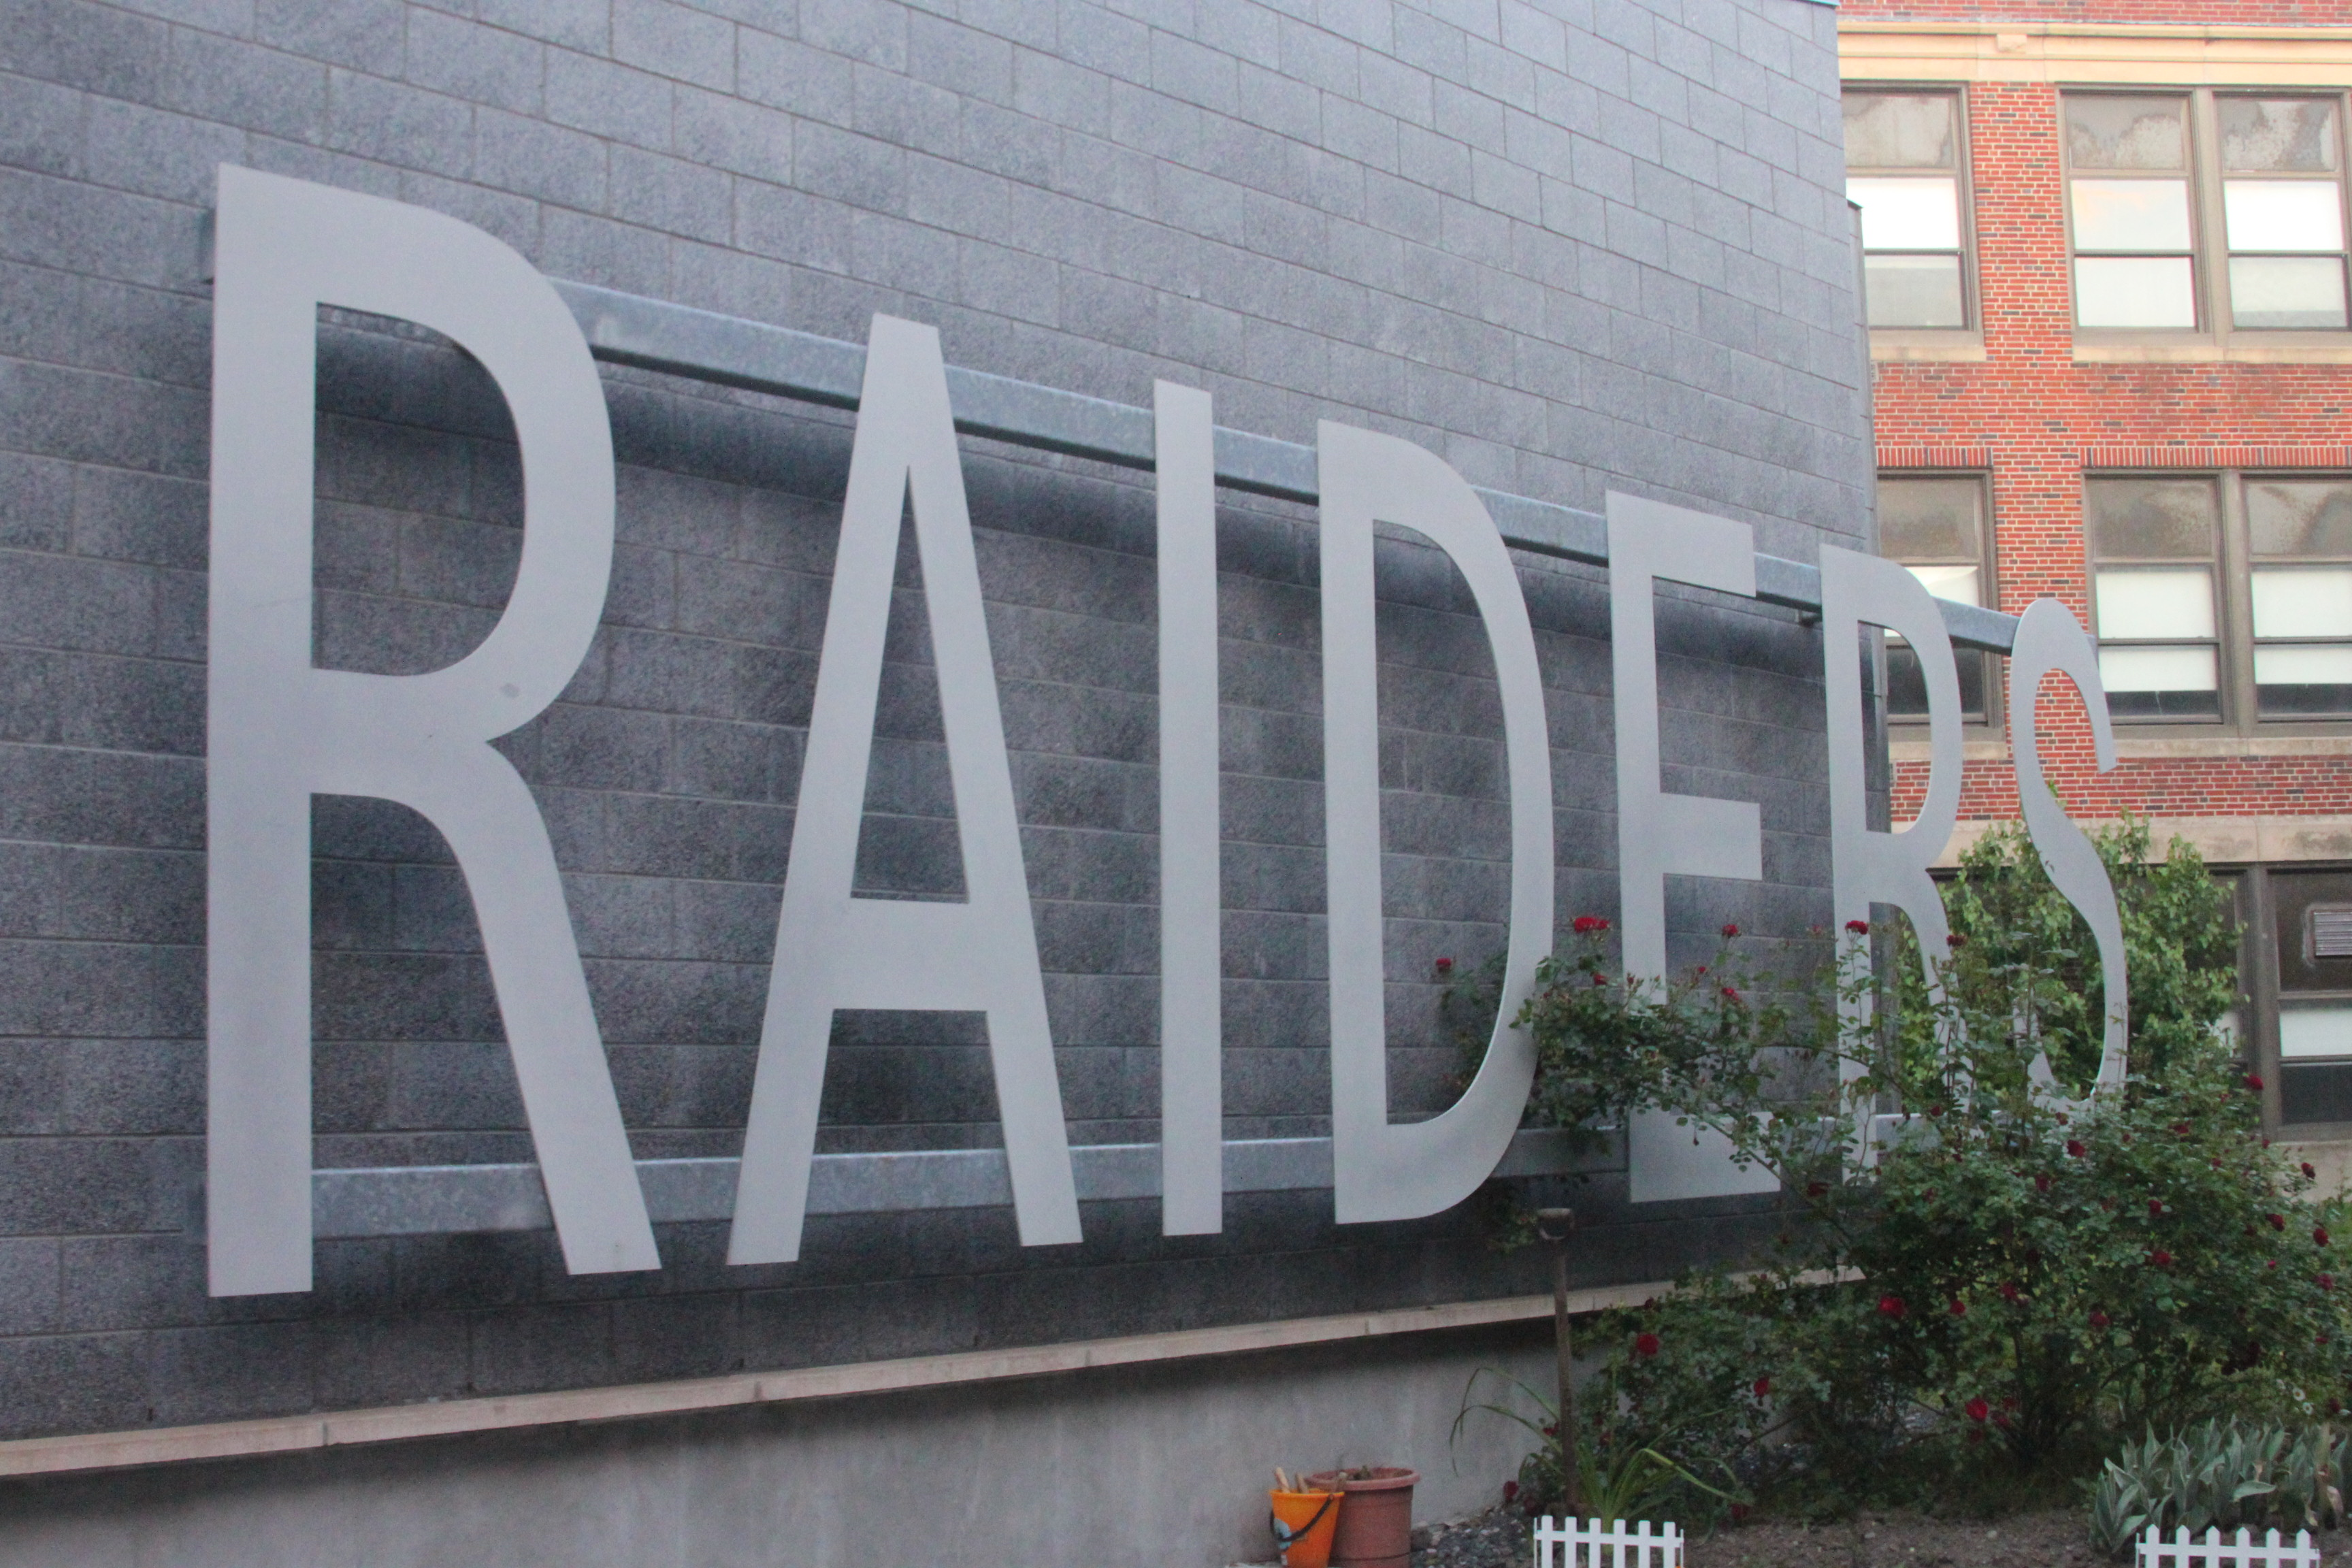 A sign inside an atrium at Watertown High School displaying the current mascot - the Raiders.